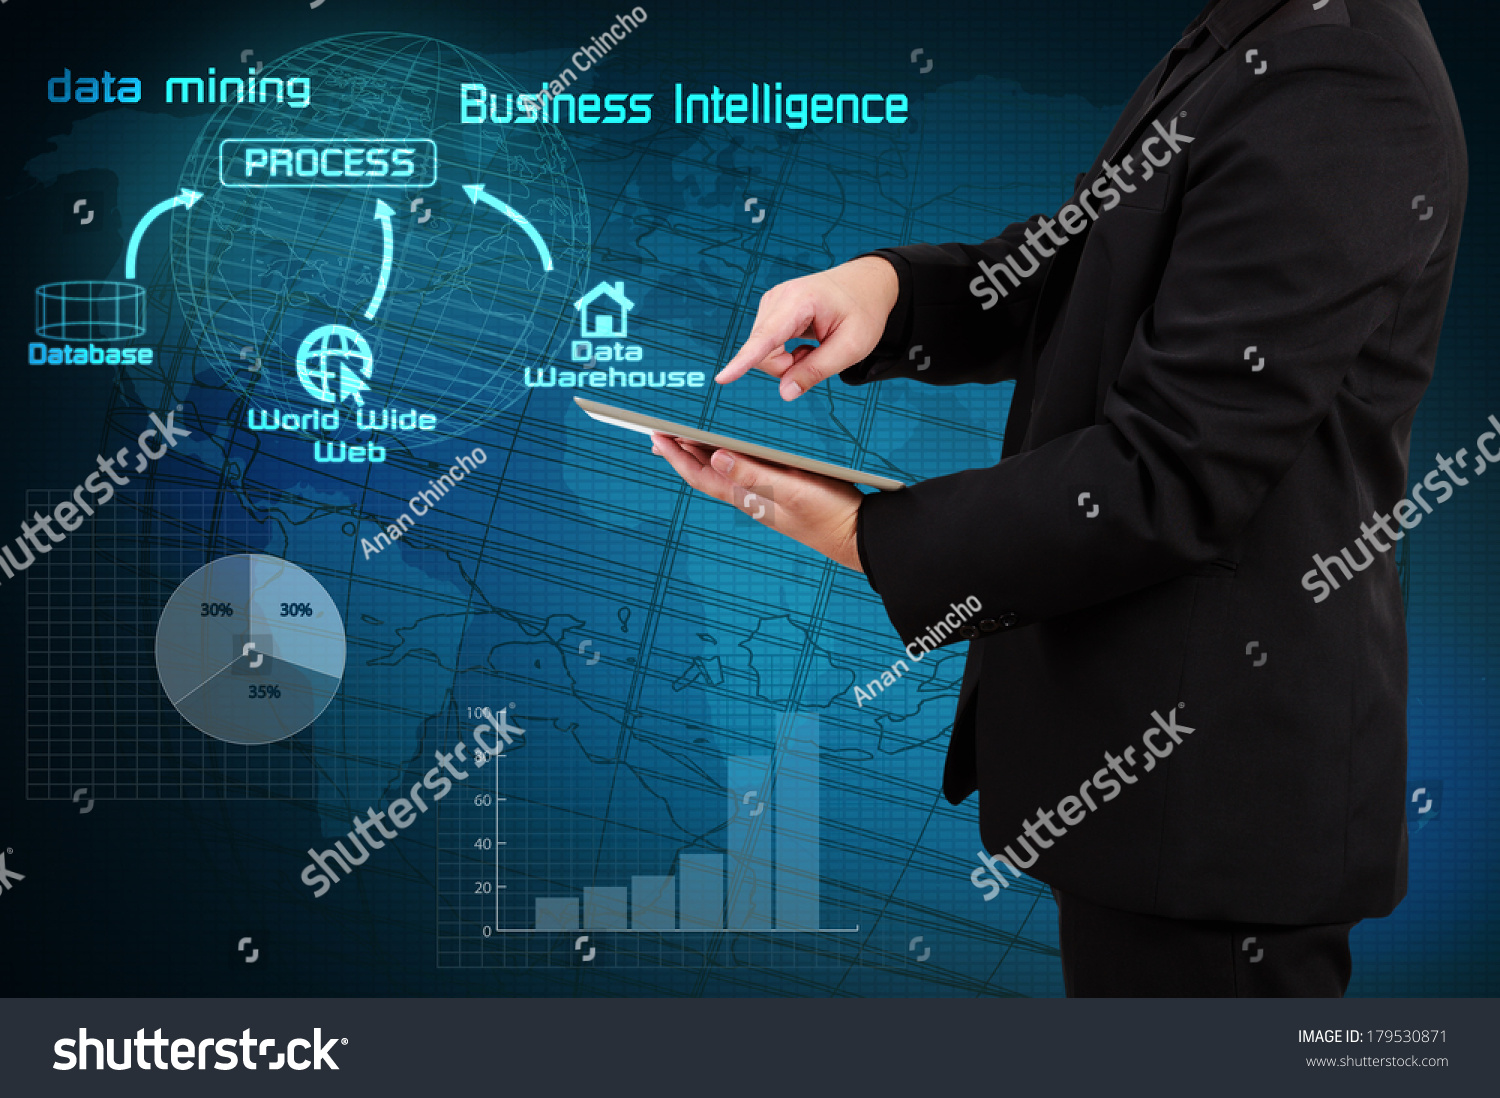 business intelligence and data mining Here is the best resource for homework help with business cts4454 : business intelligence and data mining at st petersburg college find businesscts4454.